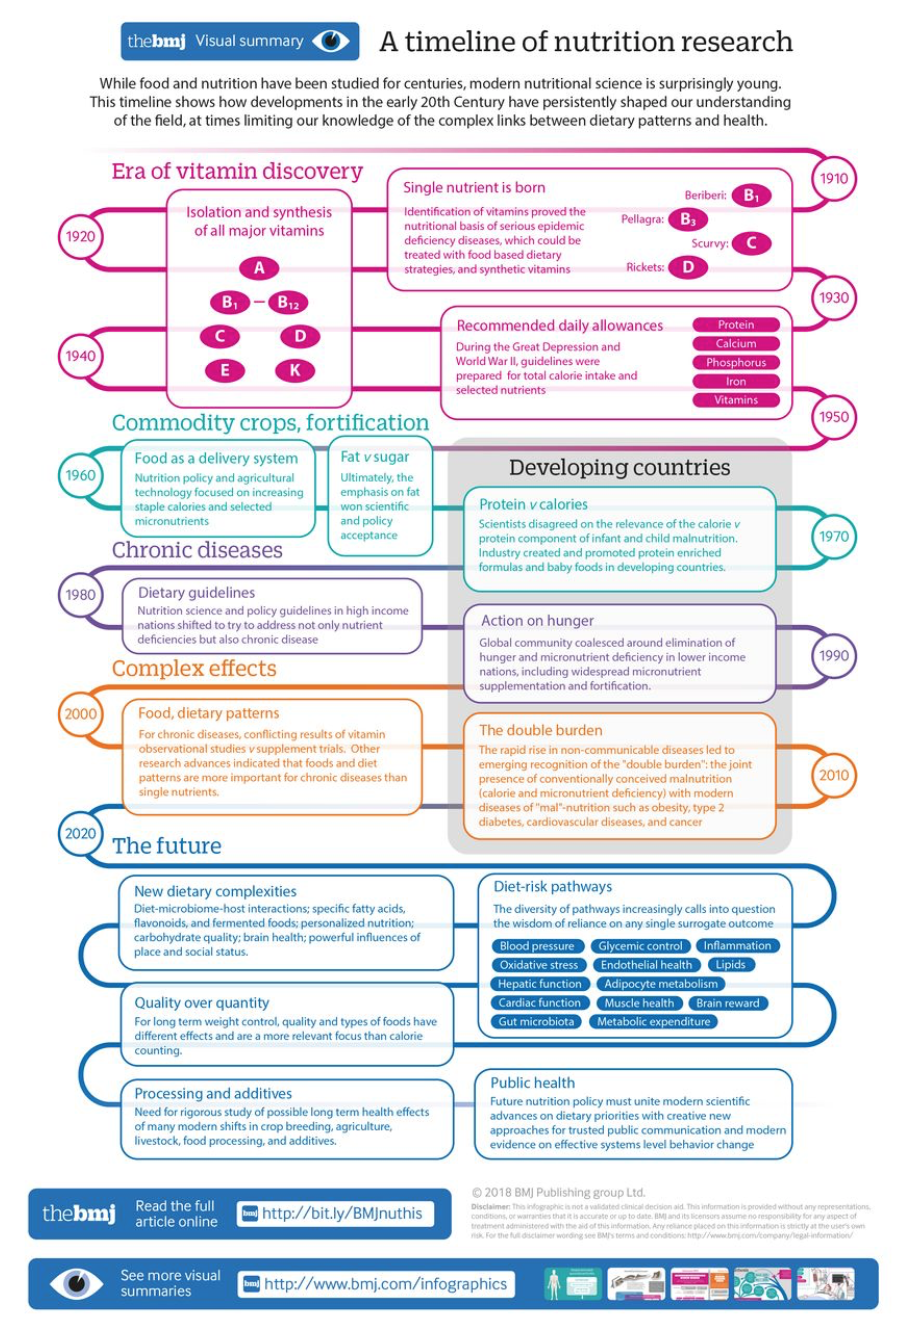 A Timeline of Nutriton Research. Image source:  https://www.bmj.com/content/361/bmj.k2392